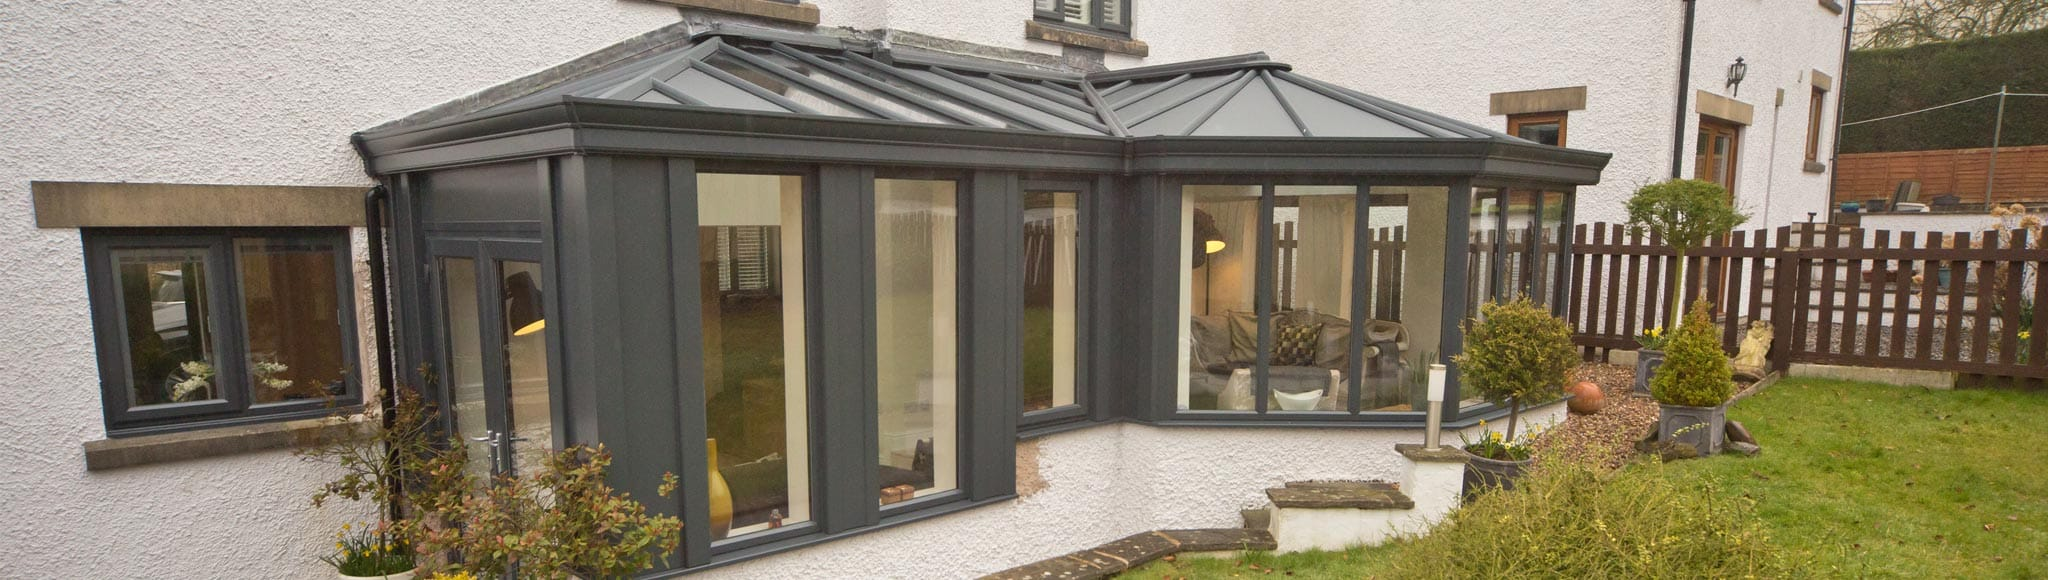 Pshaped Conservatory Yorkshire